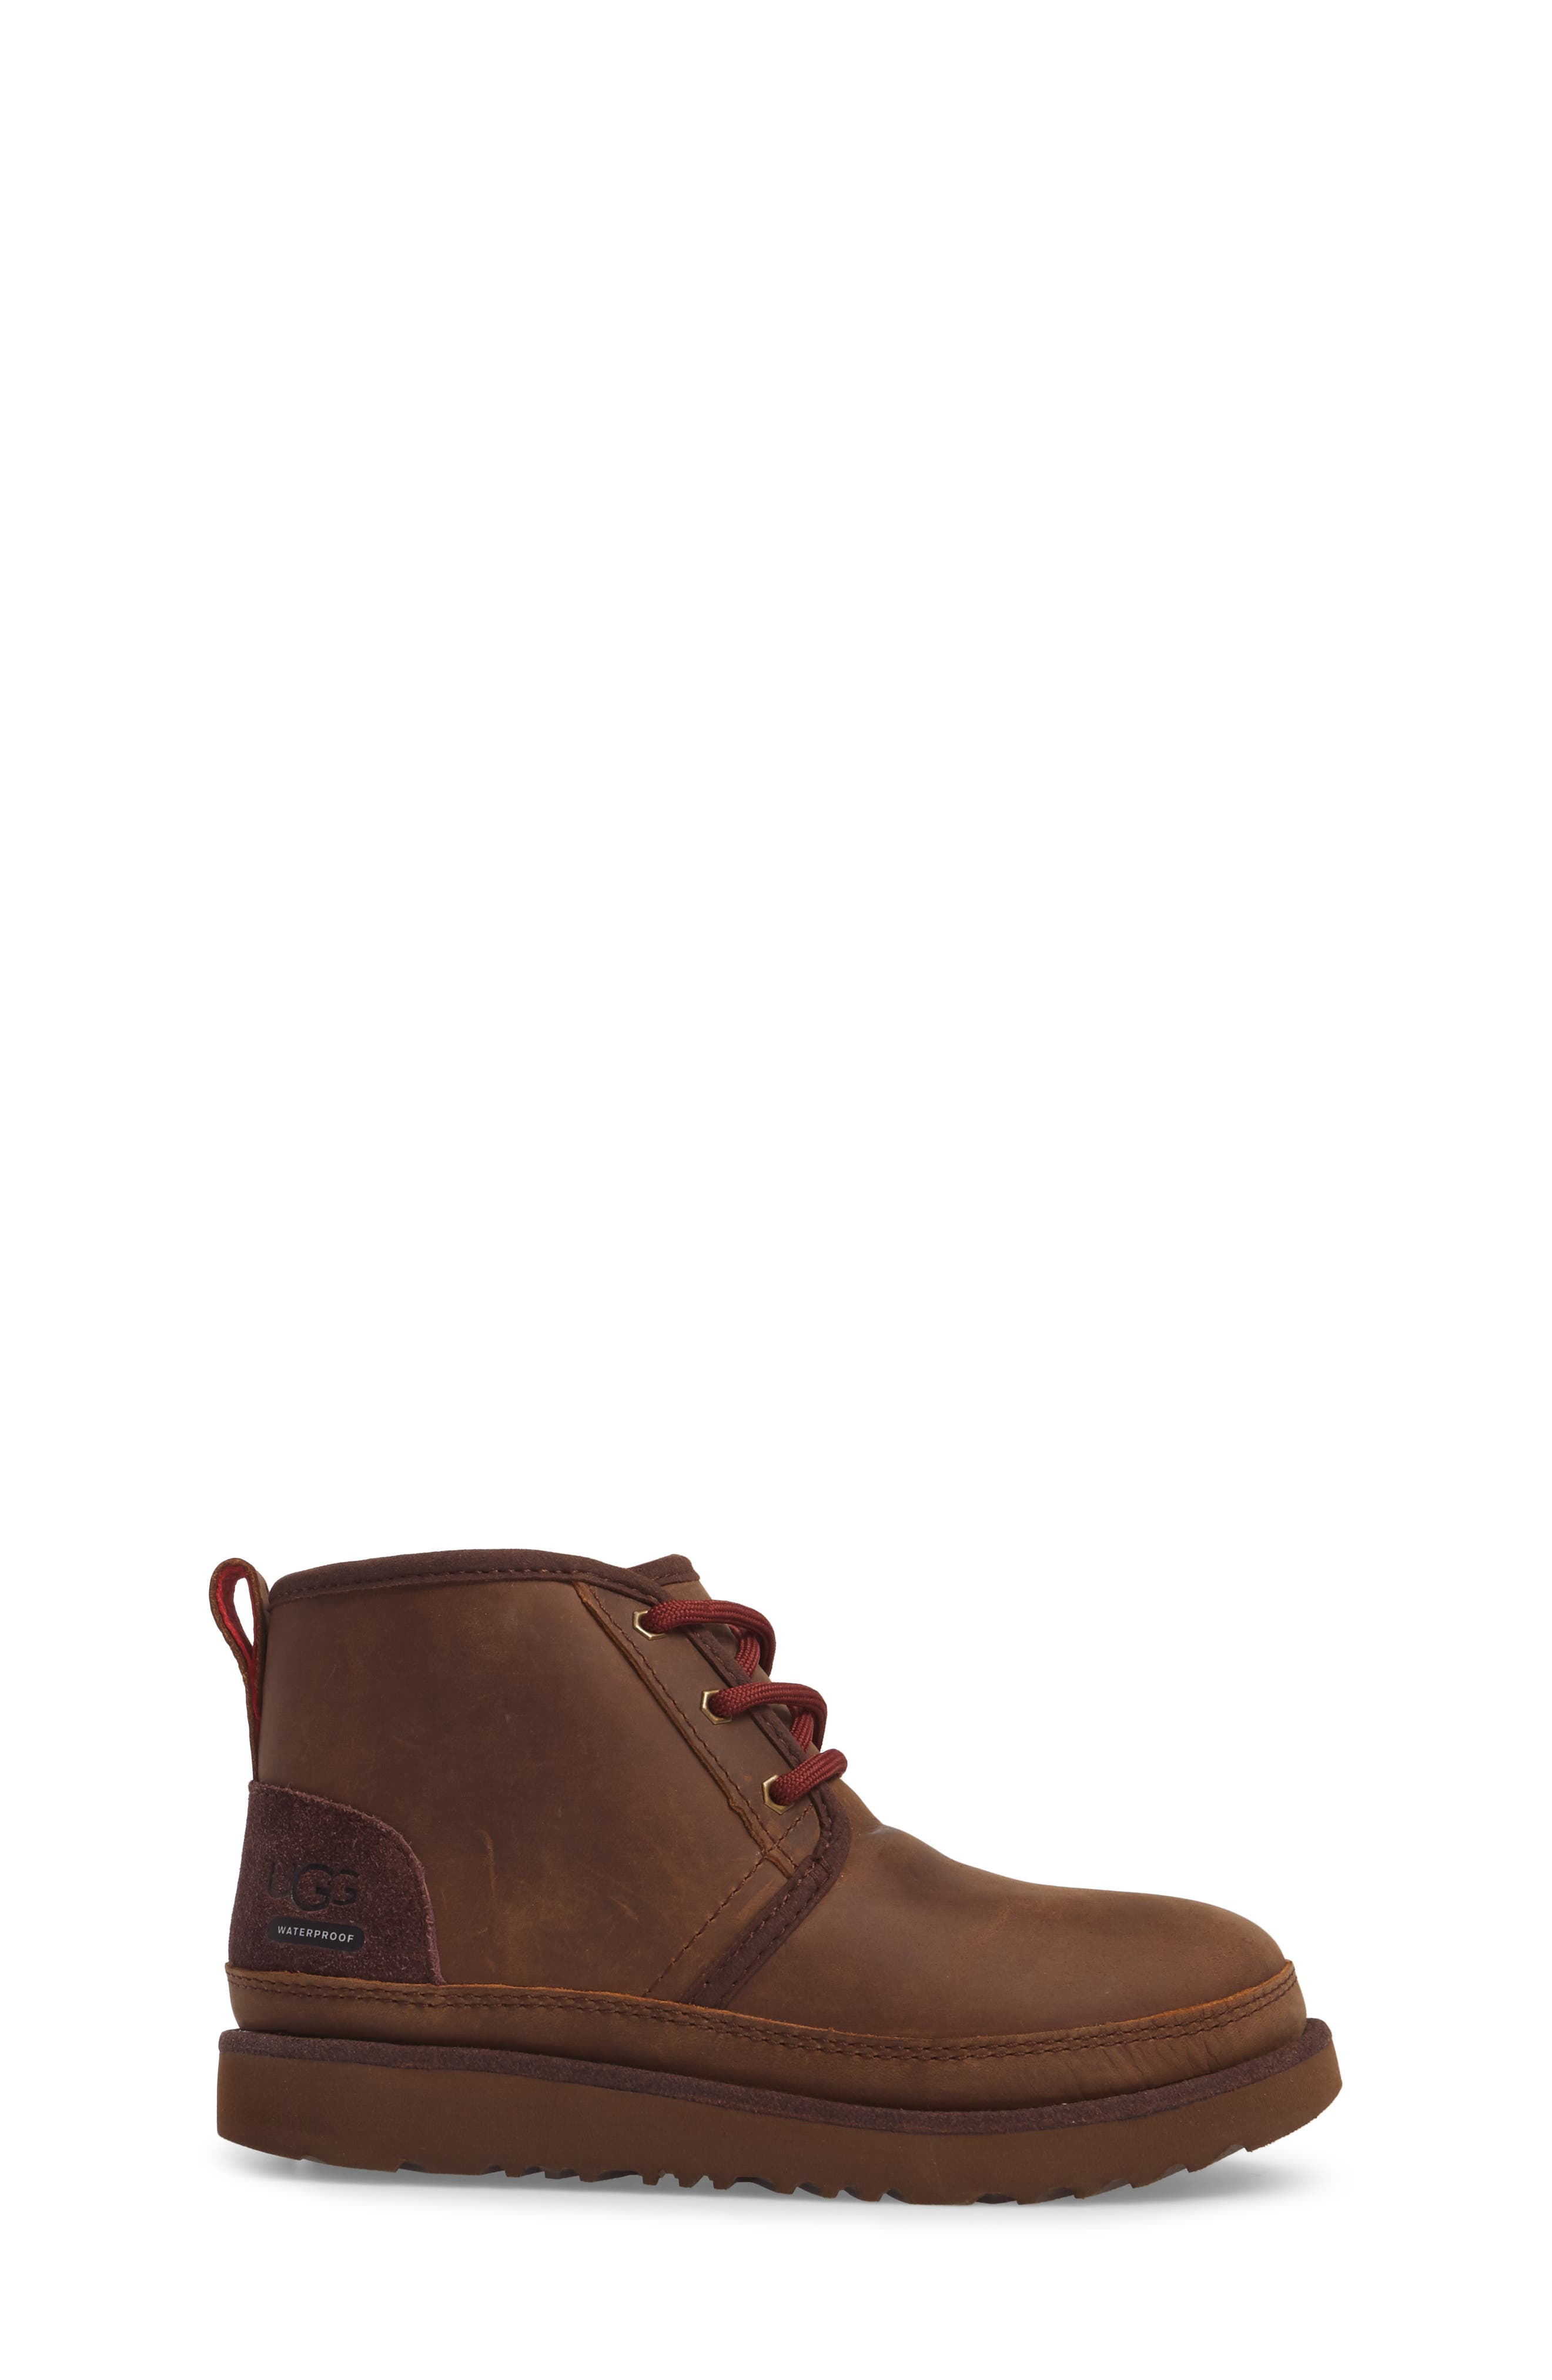 Neumel II Waterproof Chukka,                             Alternate thumbnail 3, color,                             Grizzly